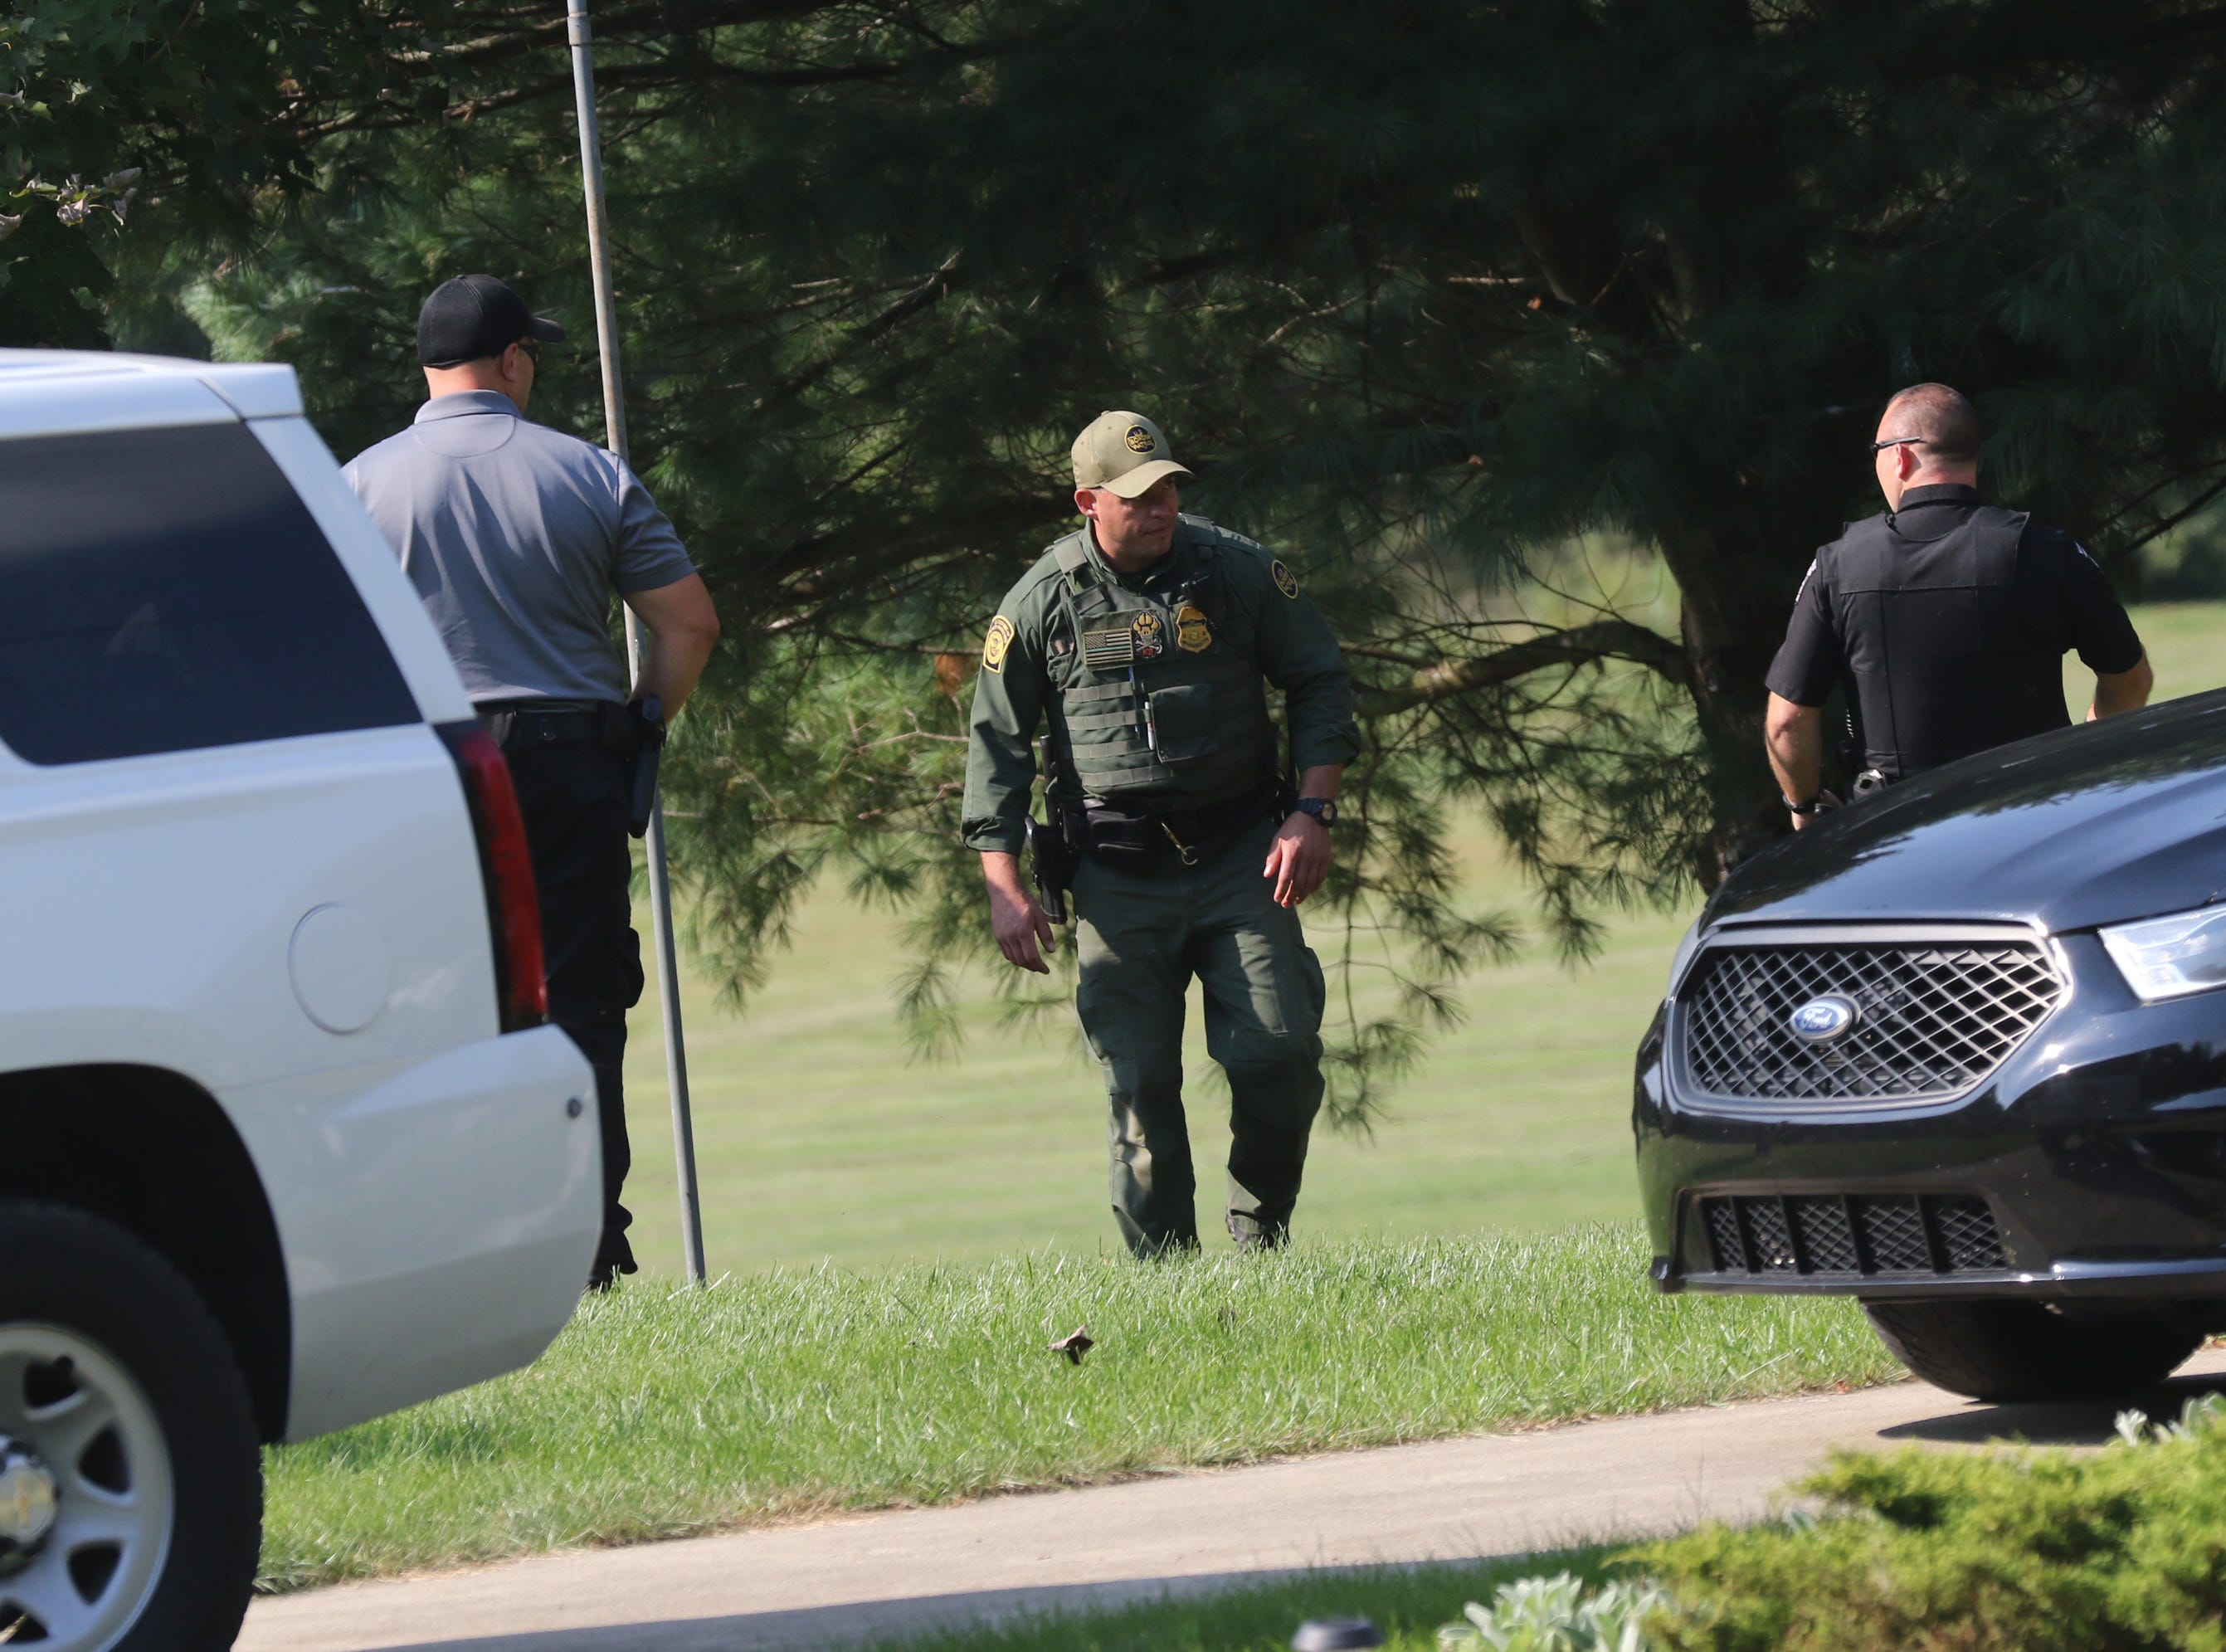 The manhunt for Shawn Christy continued in the area on Thursday afternoon as many federal and local law enforcement agencies looked for him.